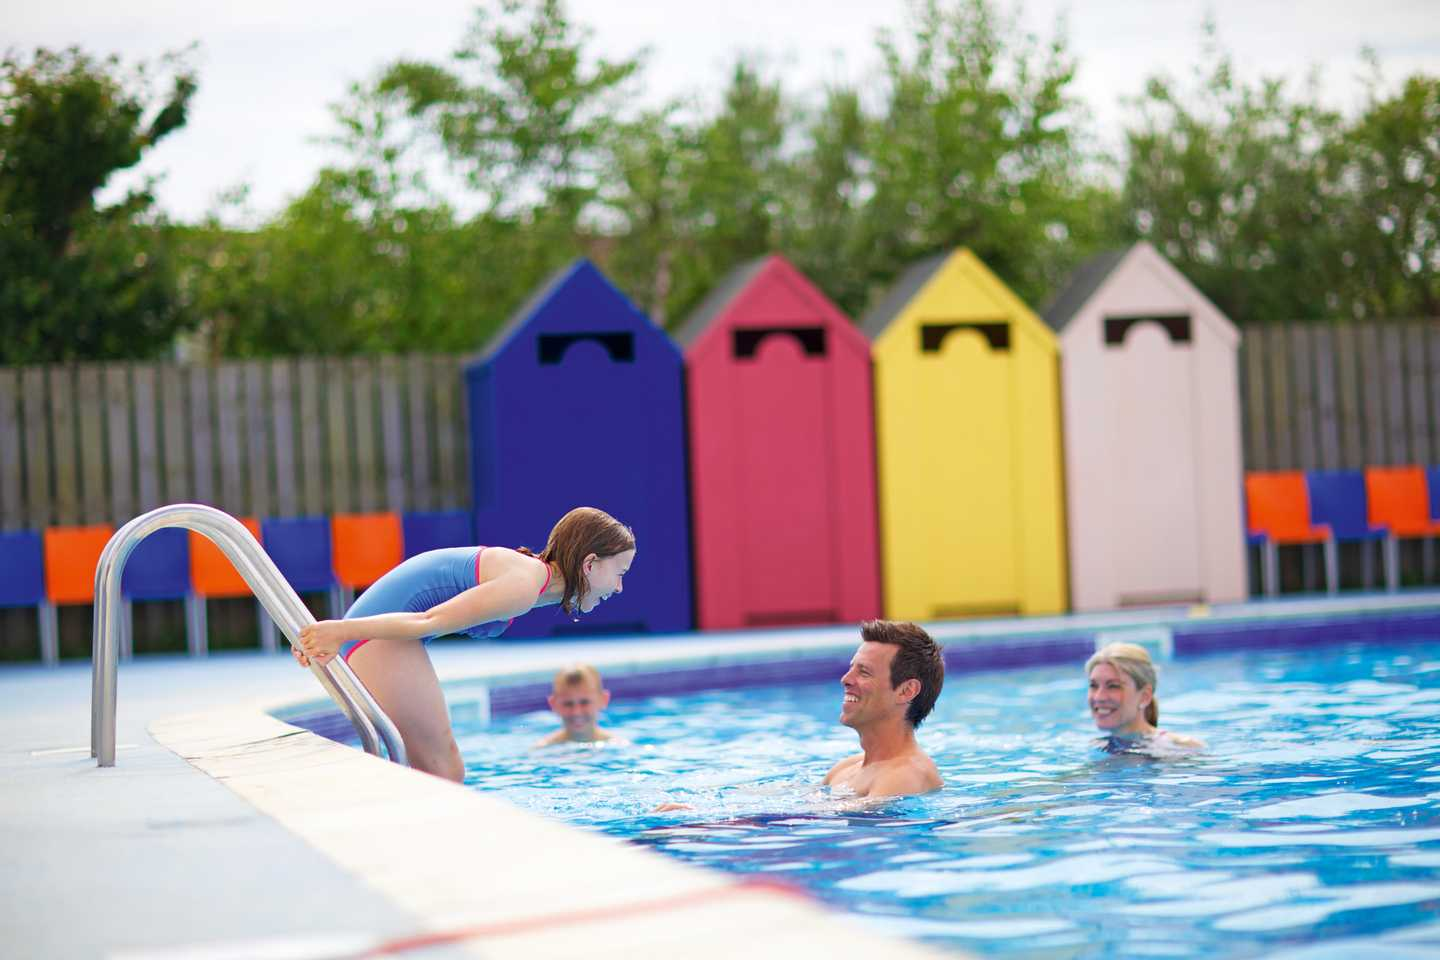 A family playing in the heated outdoor pool